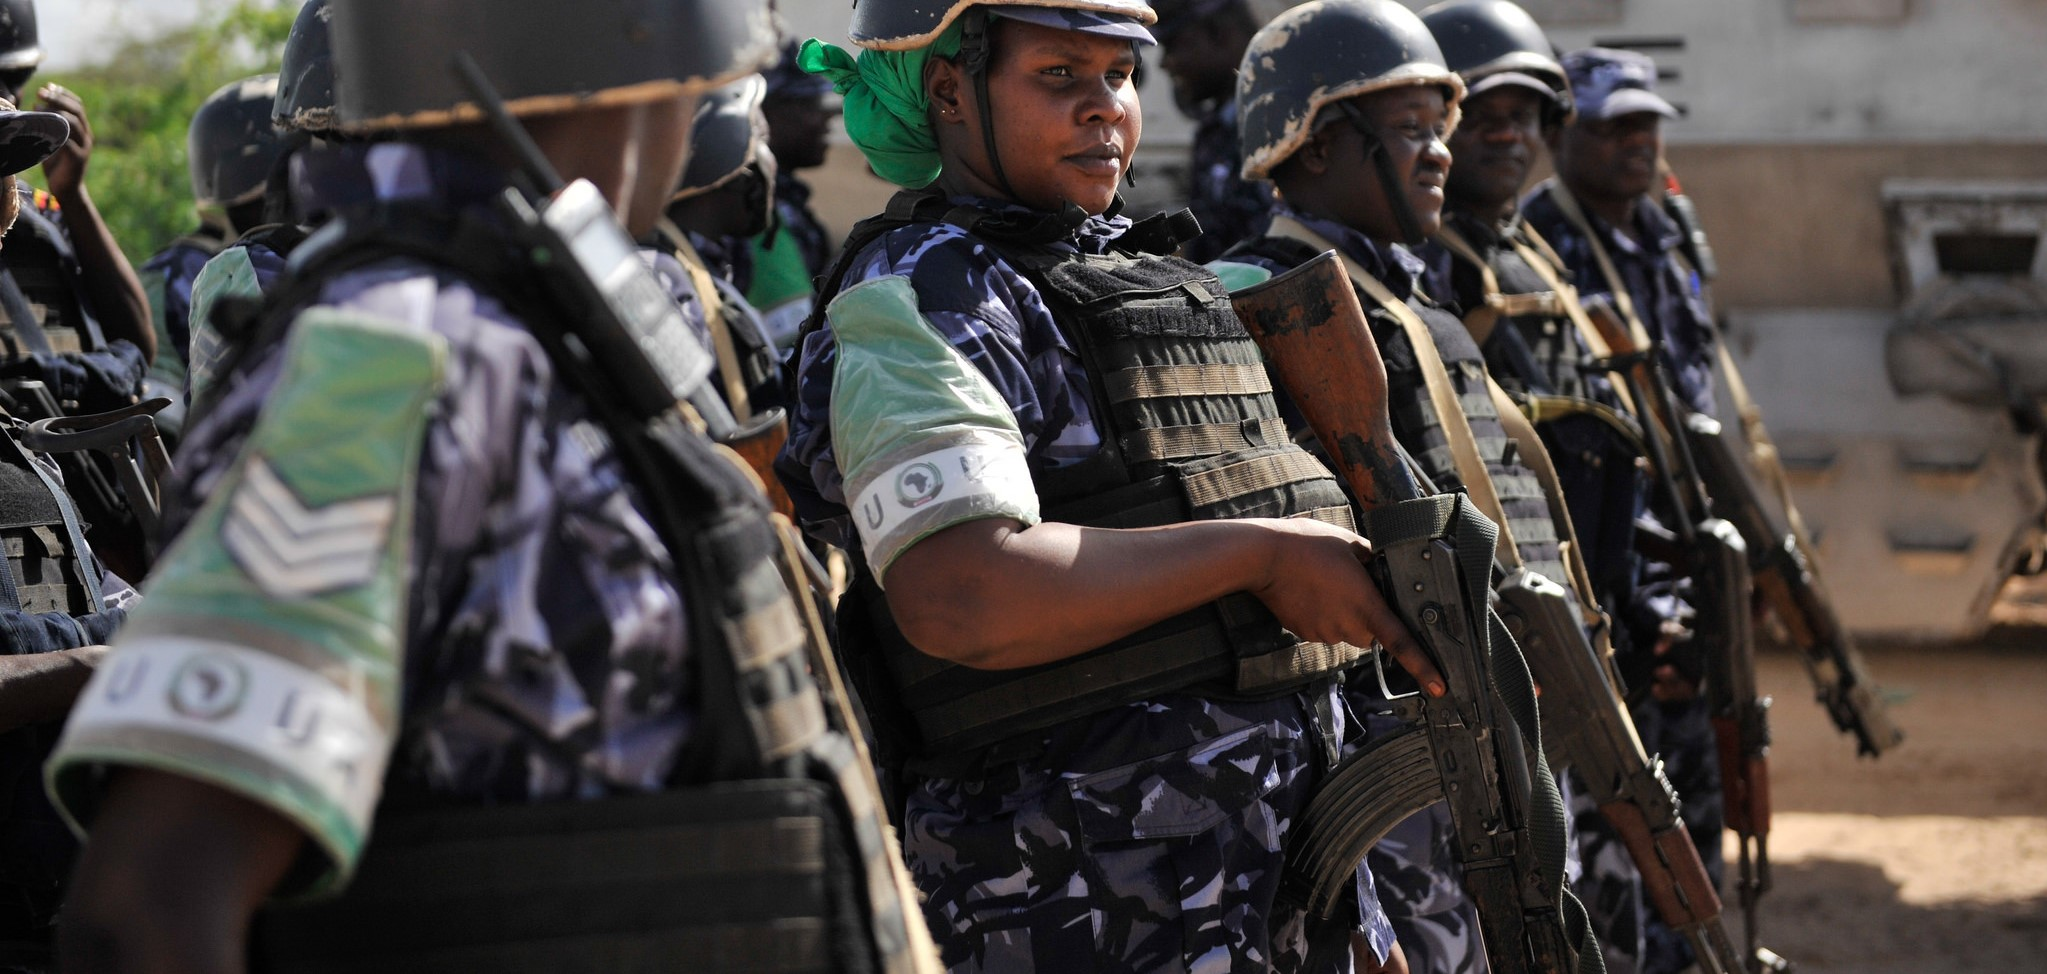 Police officers serving in the African Union Mission in Somalia (AMISOM) (Photo: Flickr/AMISOM)